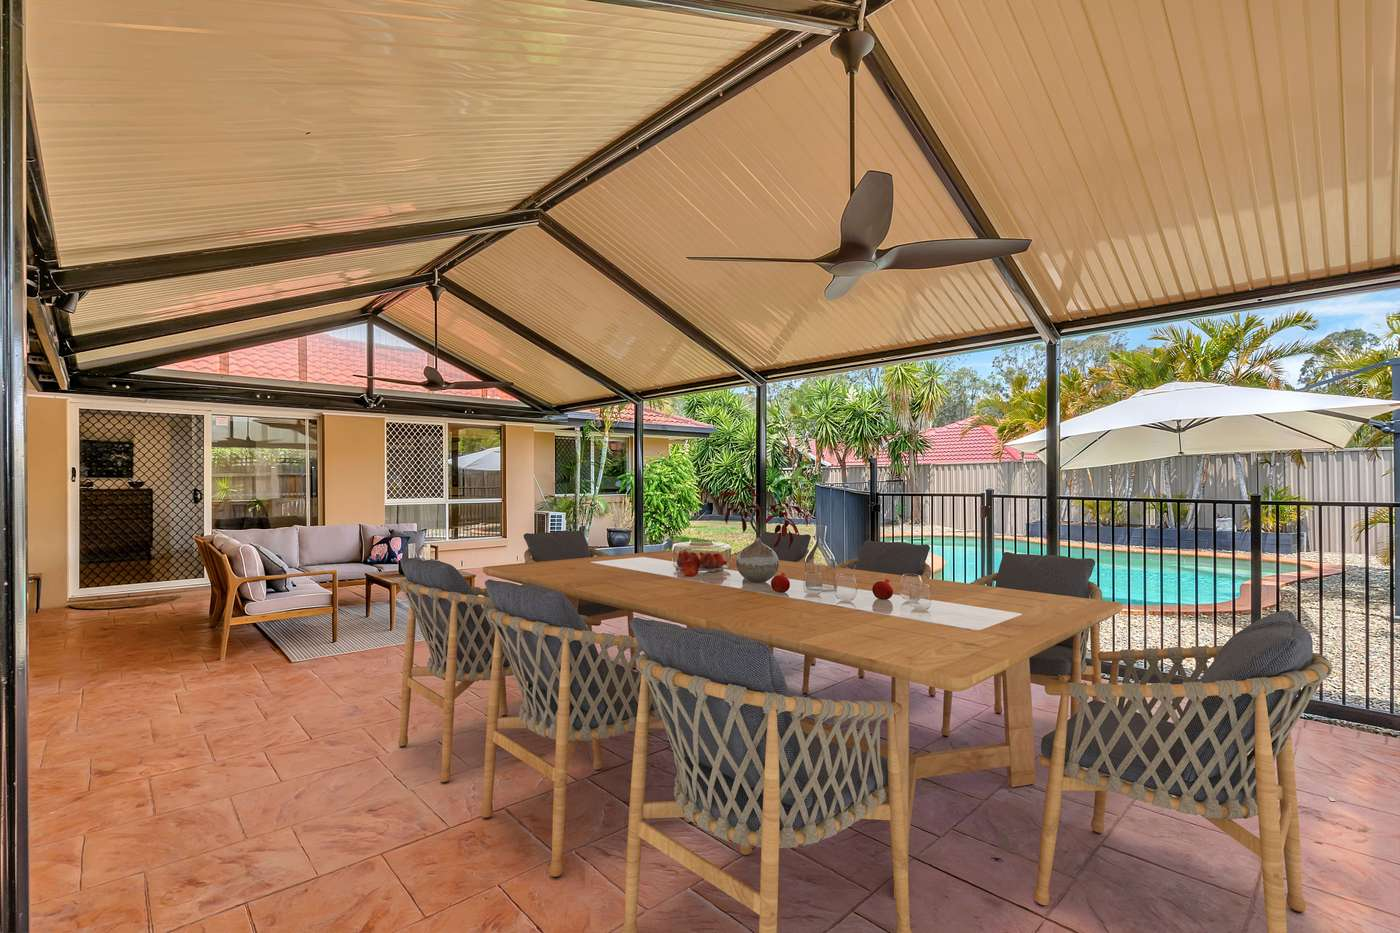 Main view of Homely house listing, 1 Ardath Close, Parkwood, QLD 4214